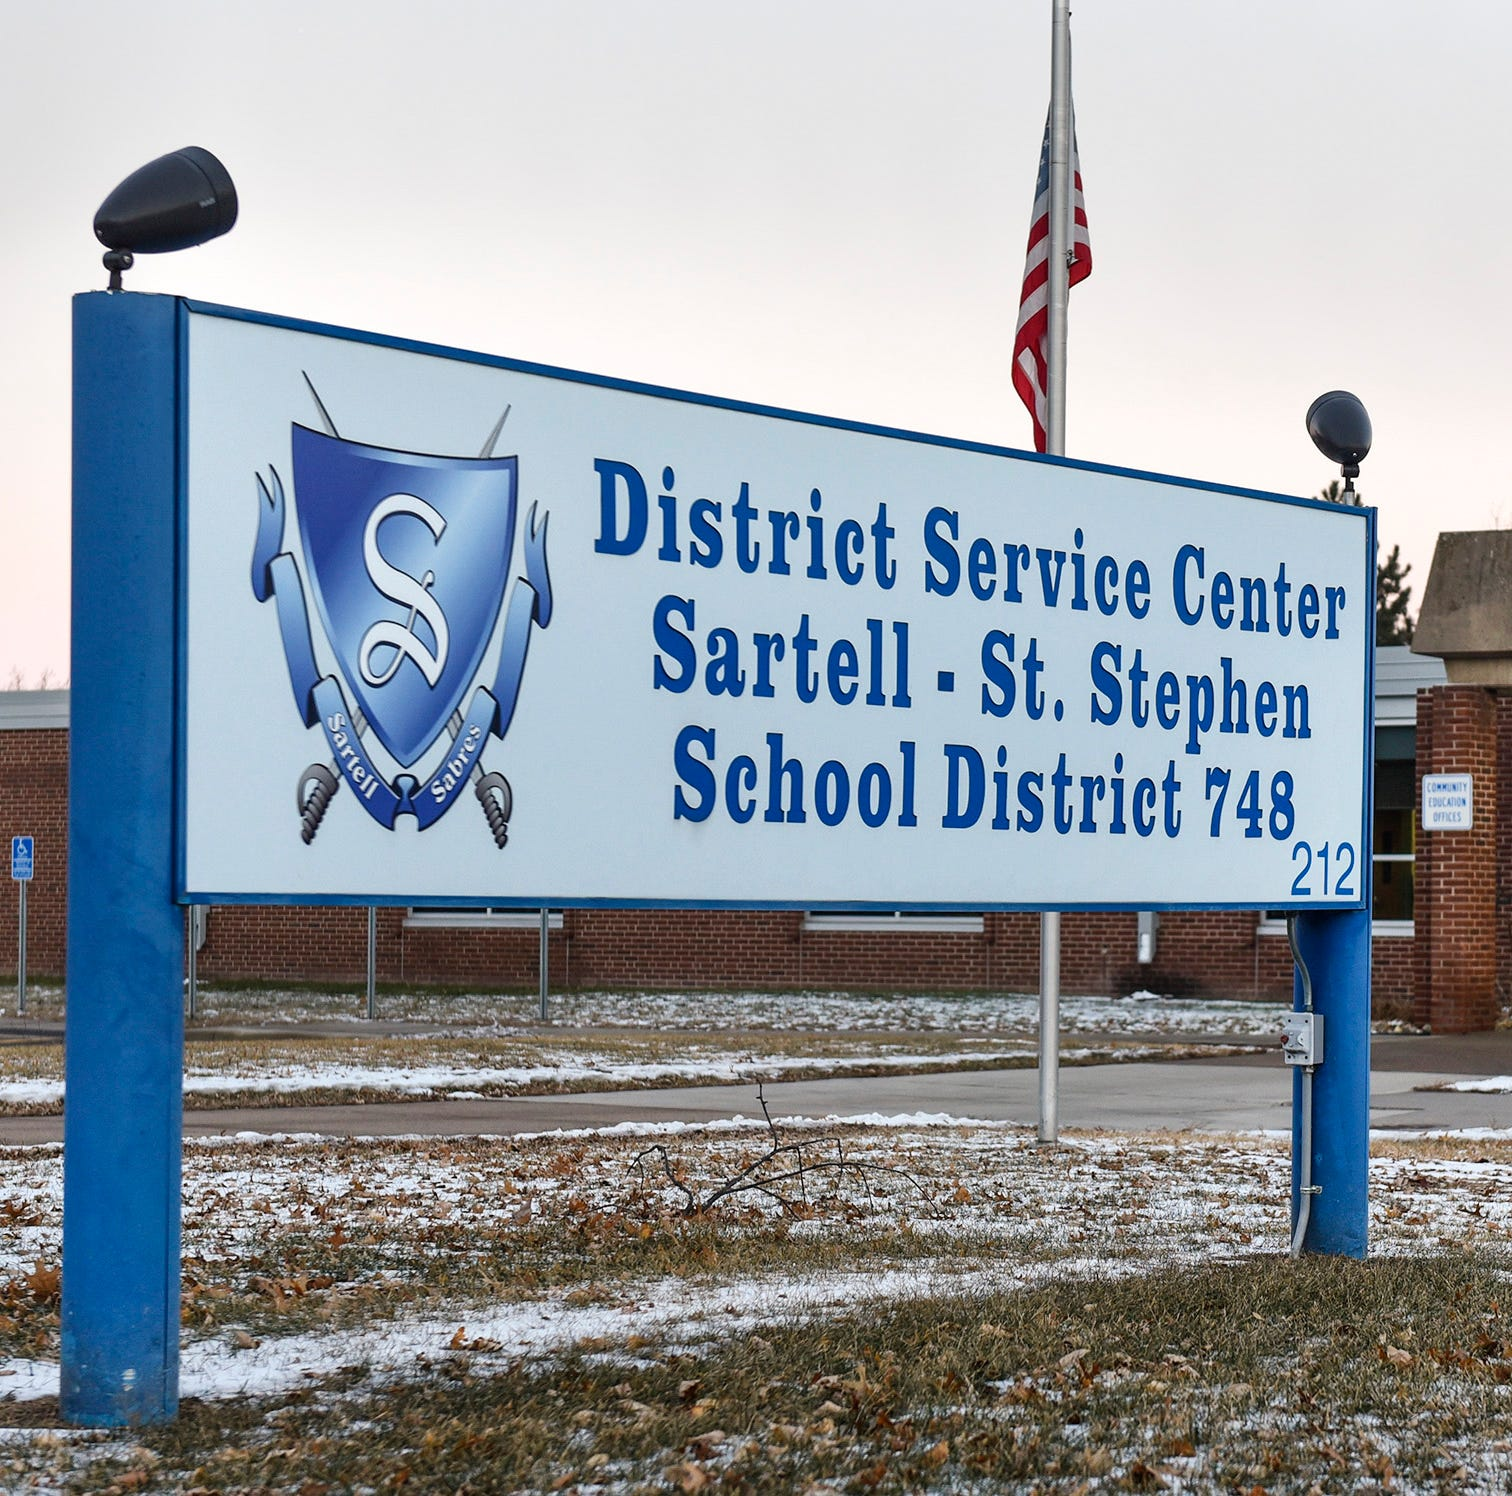 Sartell-St. Stephen school board votes down budget cut proposal